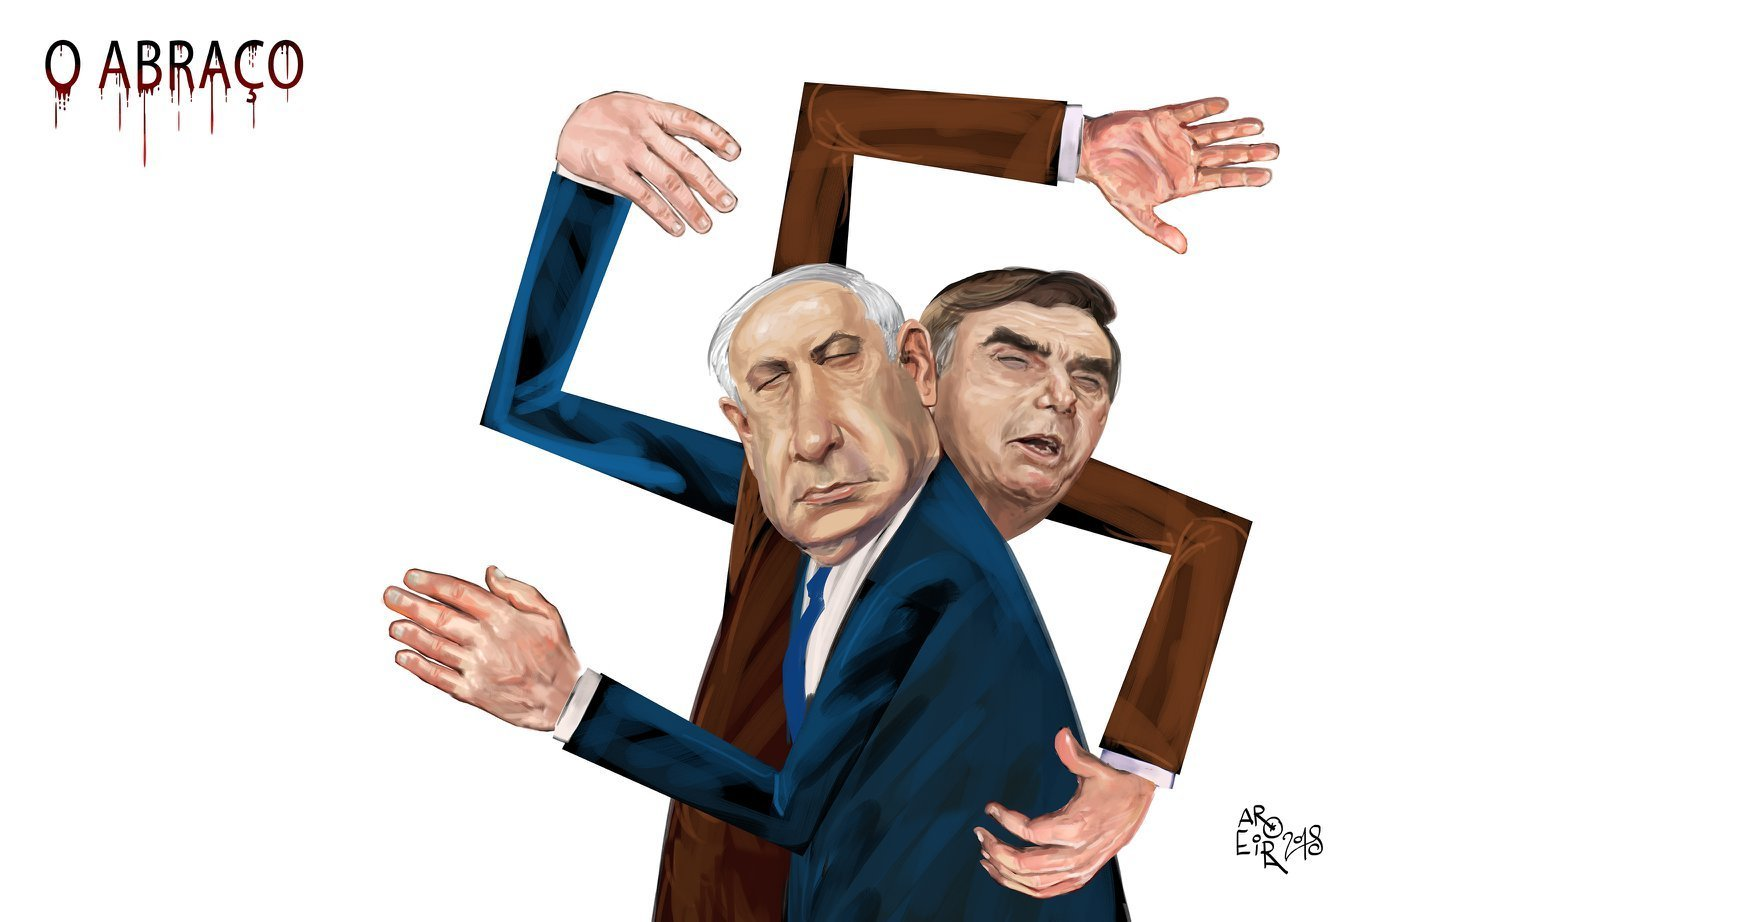 Charge do cartunista Aroeira sobre Bolsonaro e Netanyahu